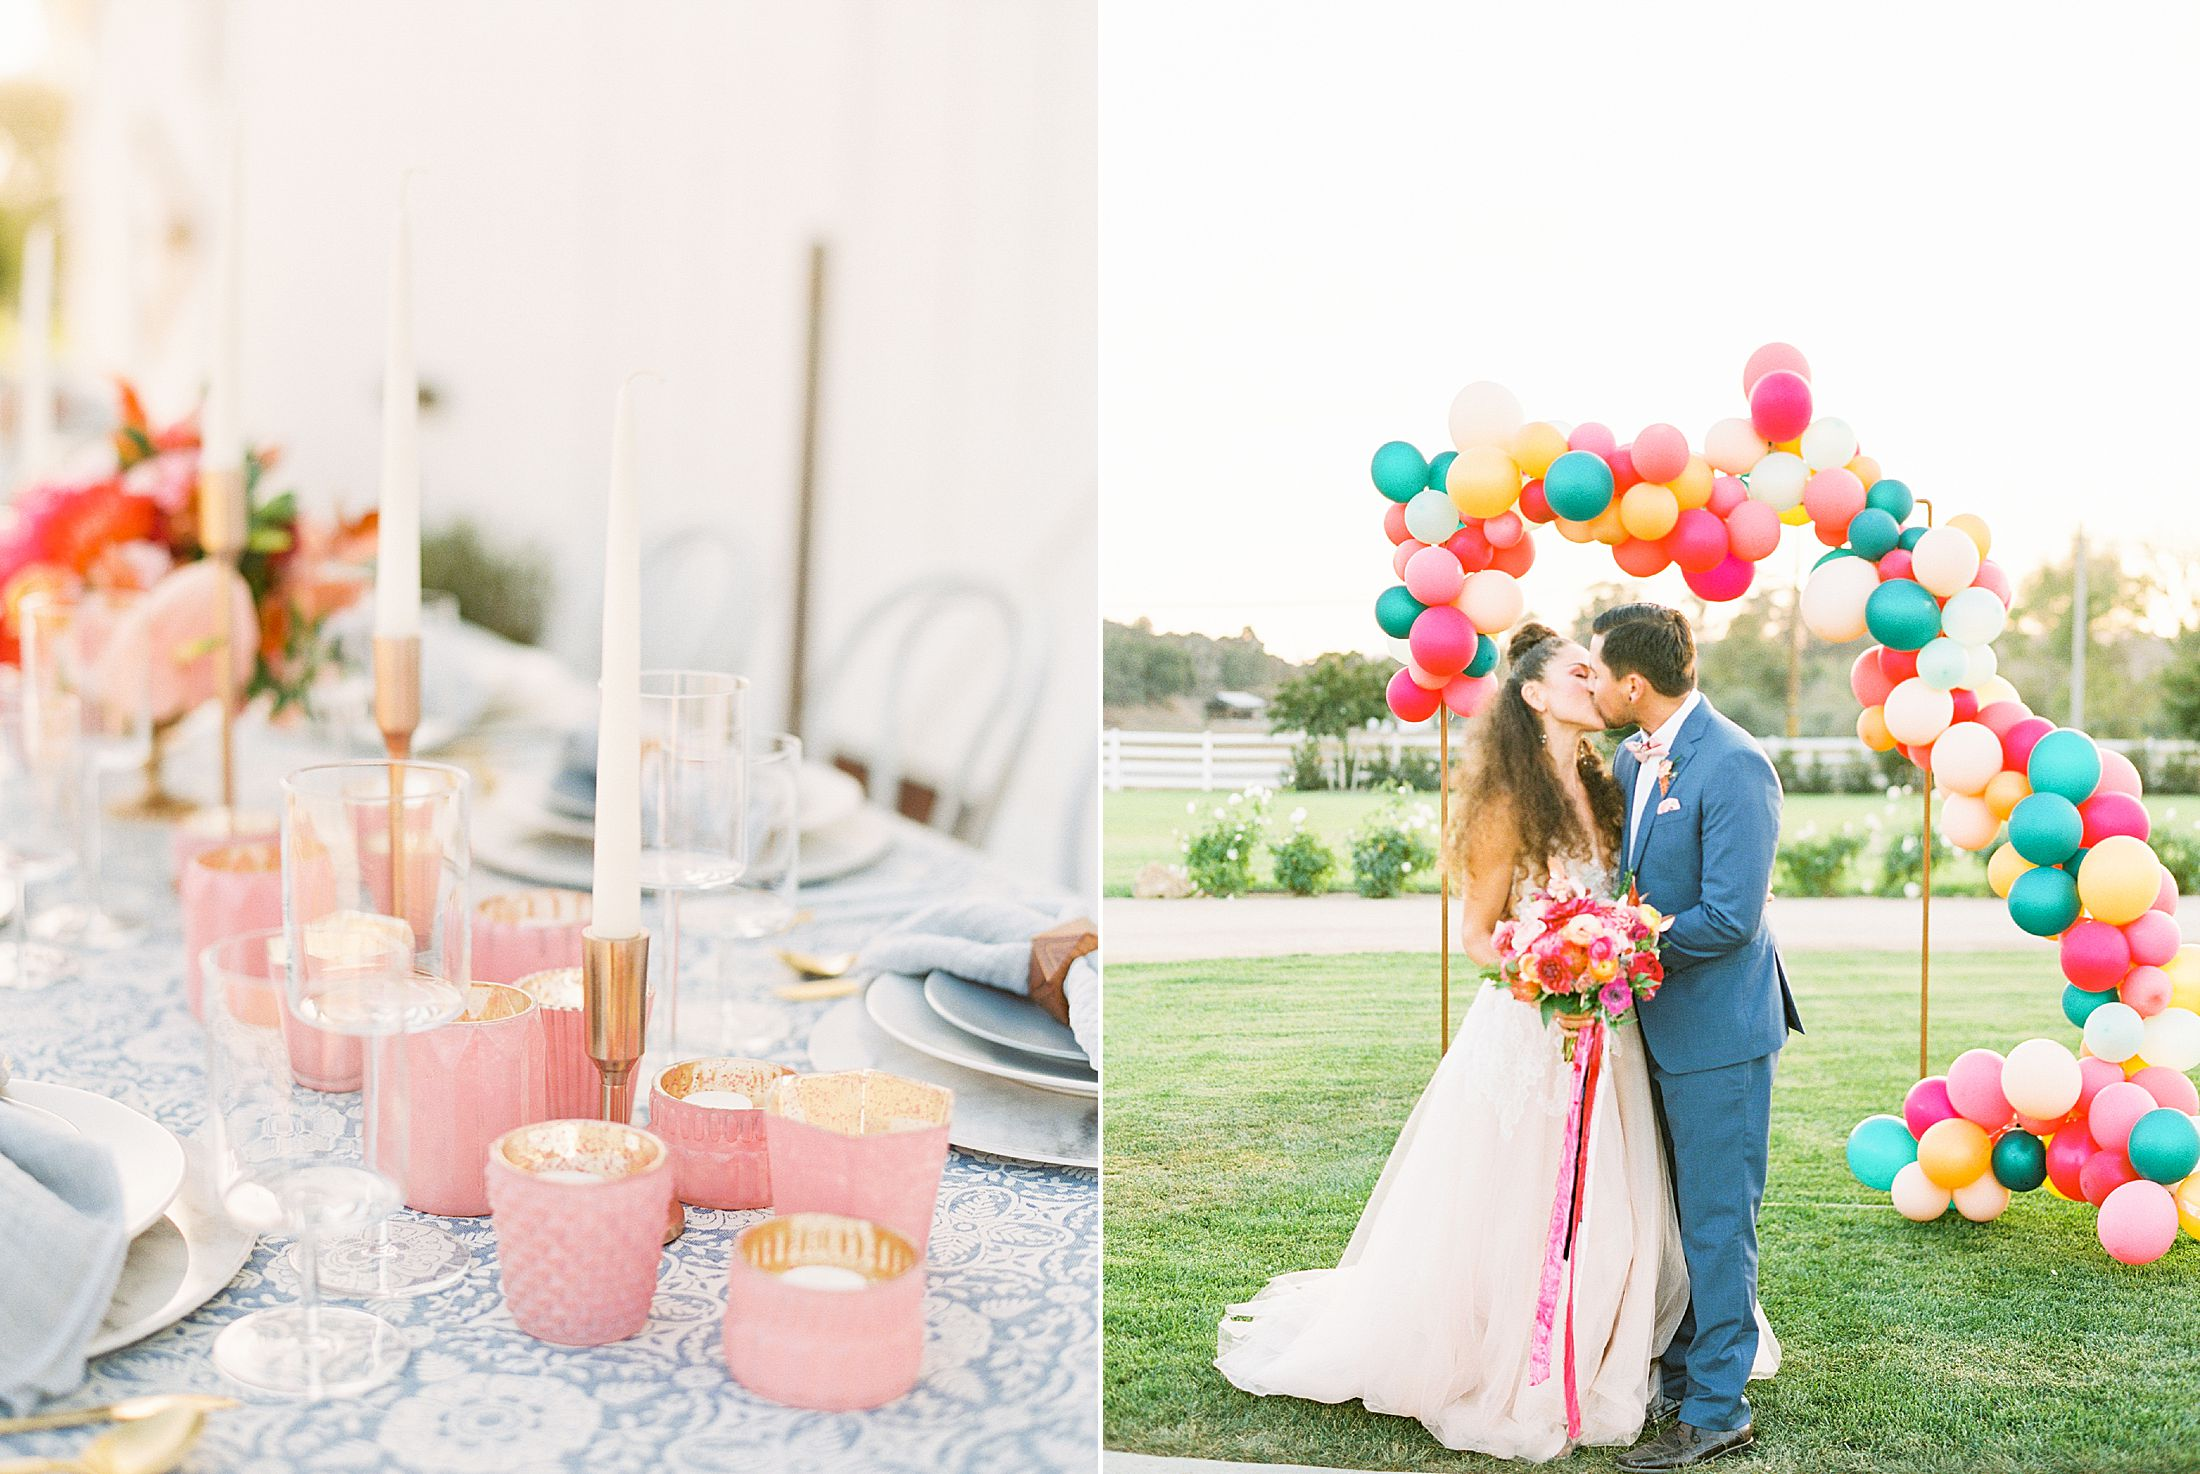 White Barn Edna Valley Wedding Inspiration - San Luis Obispo Wedding - Featured on Green Wedding Shoes - Ashley Baumgartner - FM Events SLO - SLO Wedding Photographer_0031.jpg